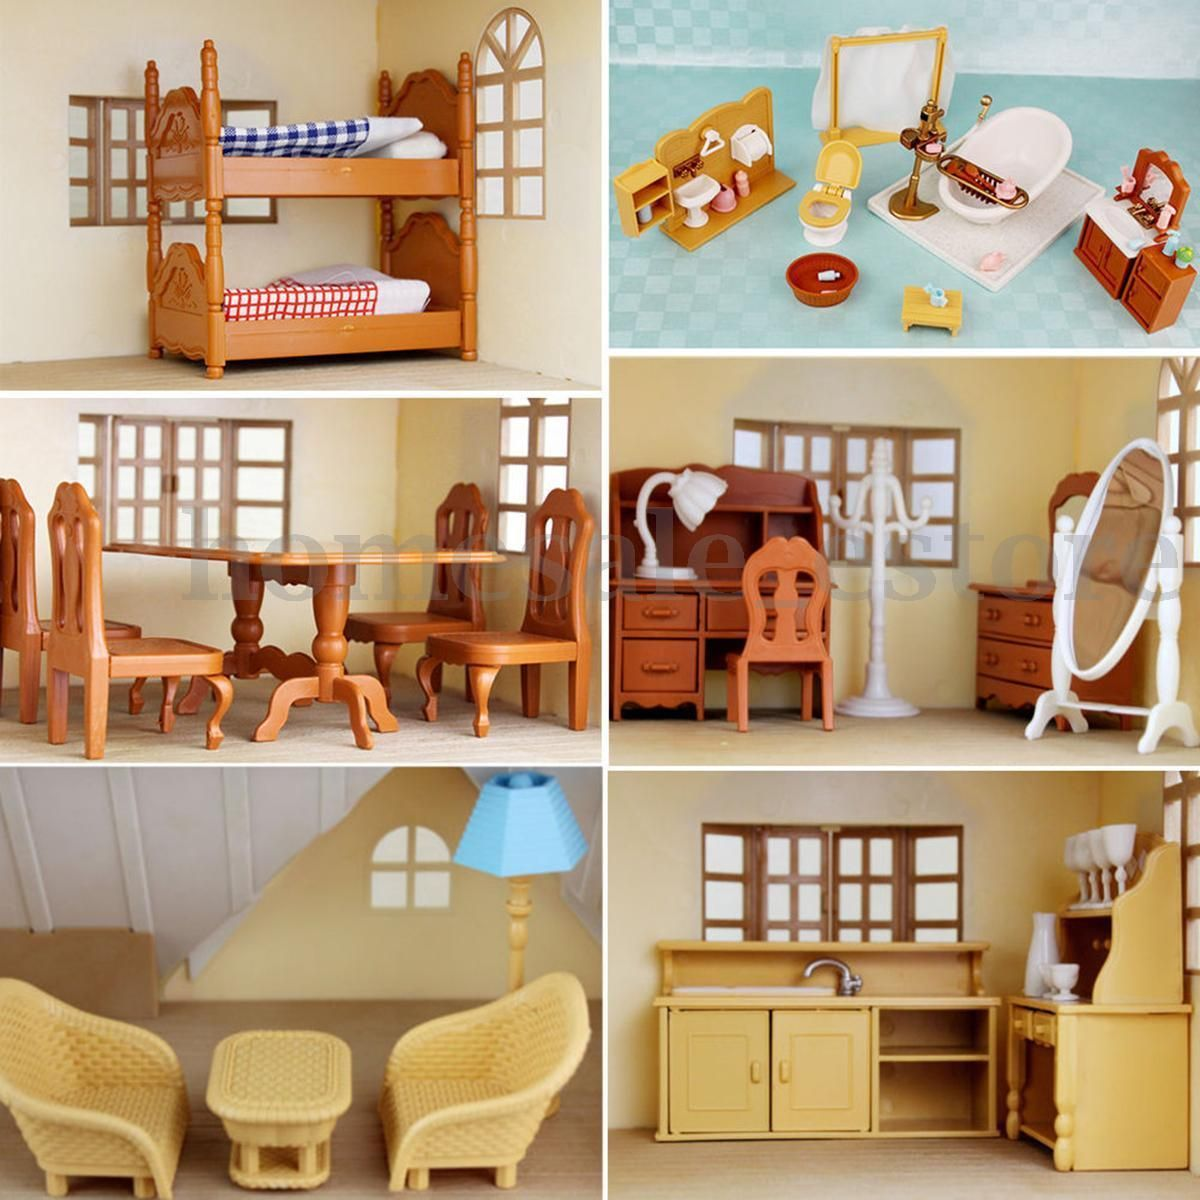 mini doll furniture. Miniature Doll House Furniture Set Kitchen Living Bathroom Kids Pretend Play Toy Mini S